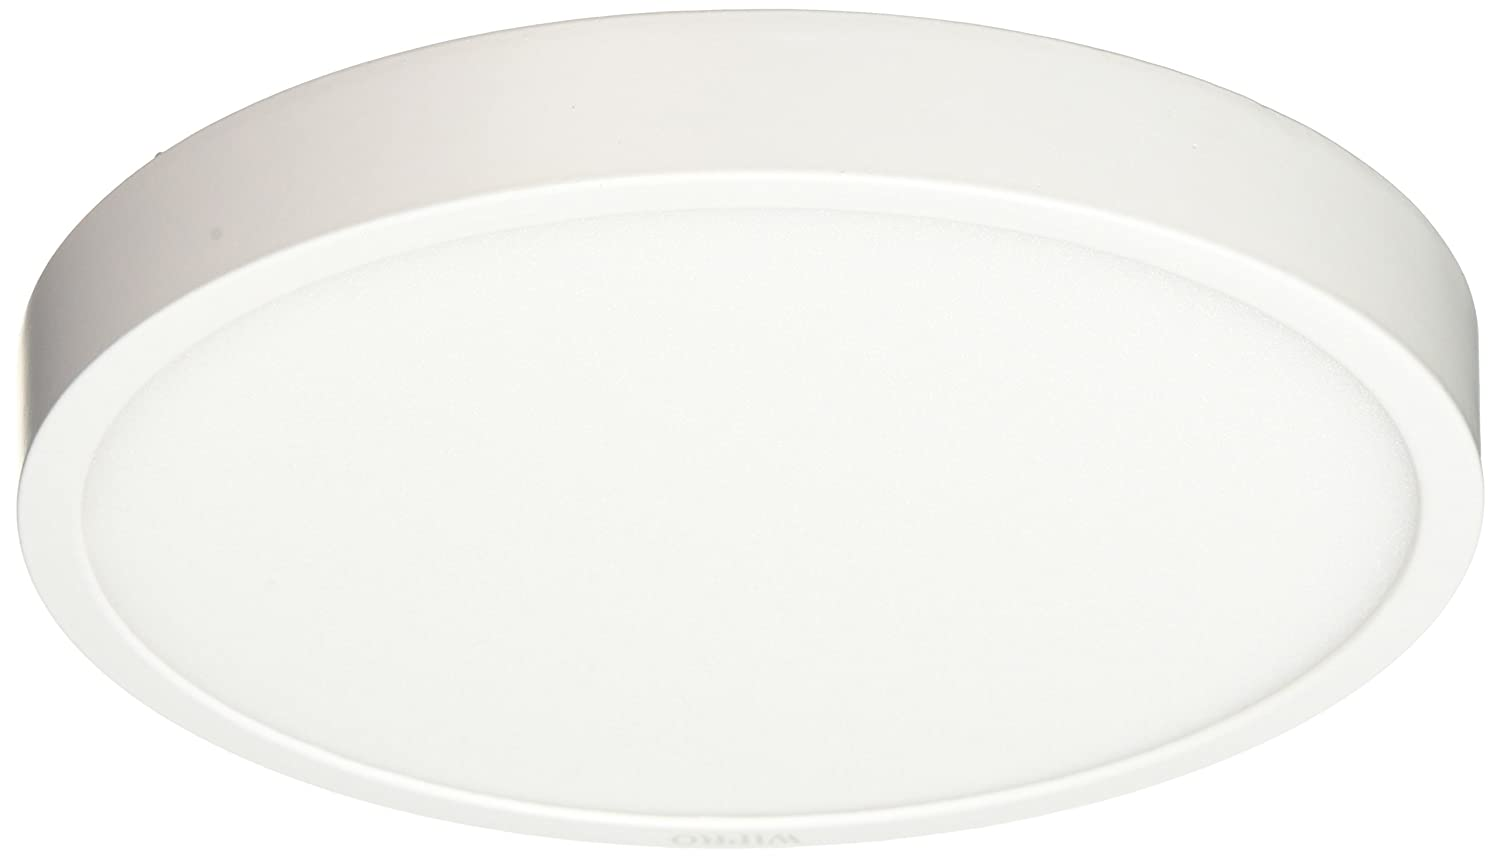 Wipro D641865 Garnet 18-Watt Trimless Panel Light (Cool Day Light, White, Round)